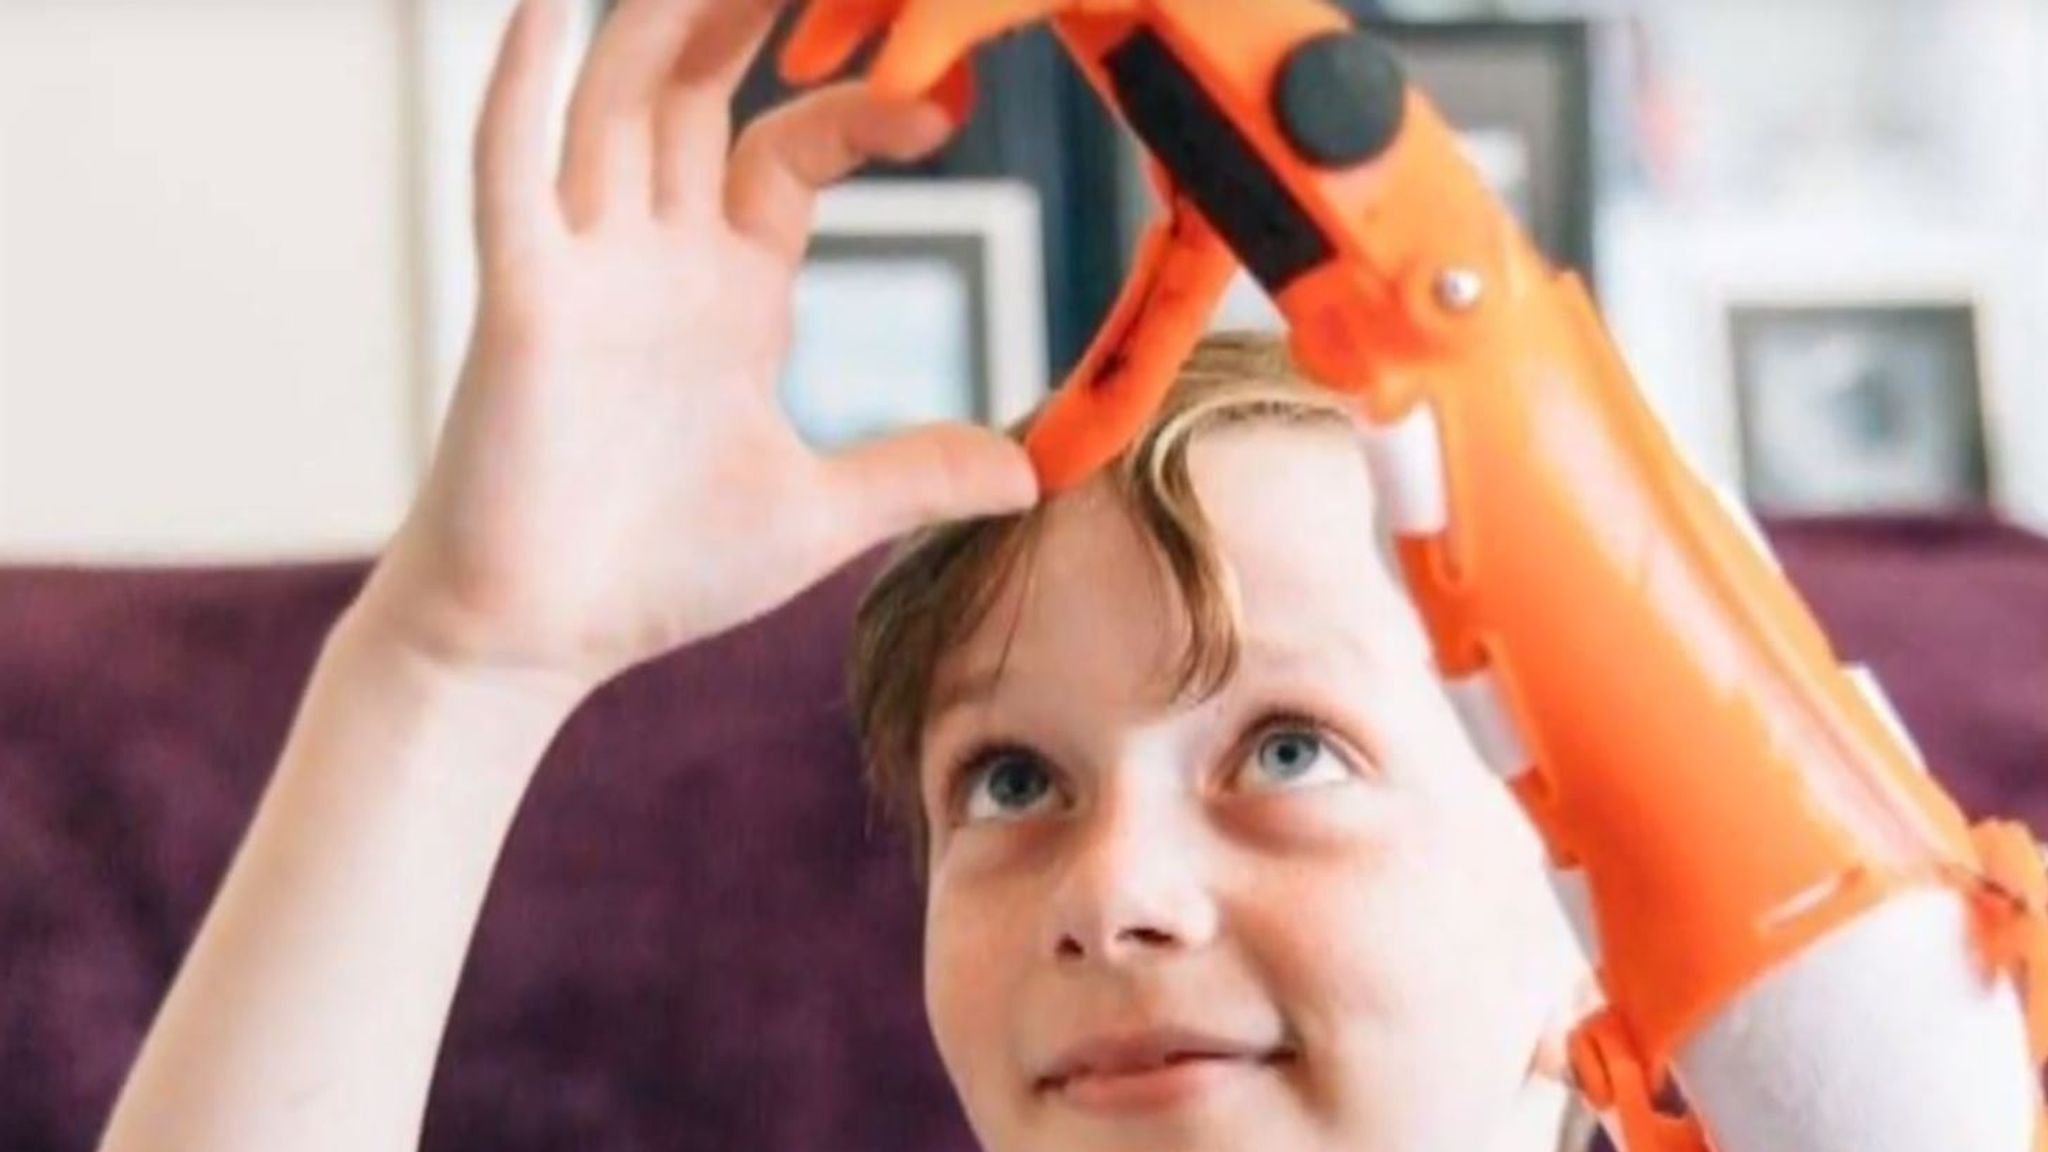 Dad builds 3D-printed bionic arm for son   UK News   Sky News